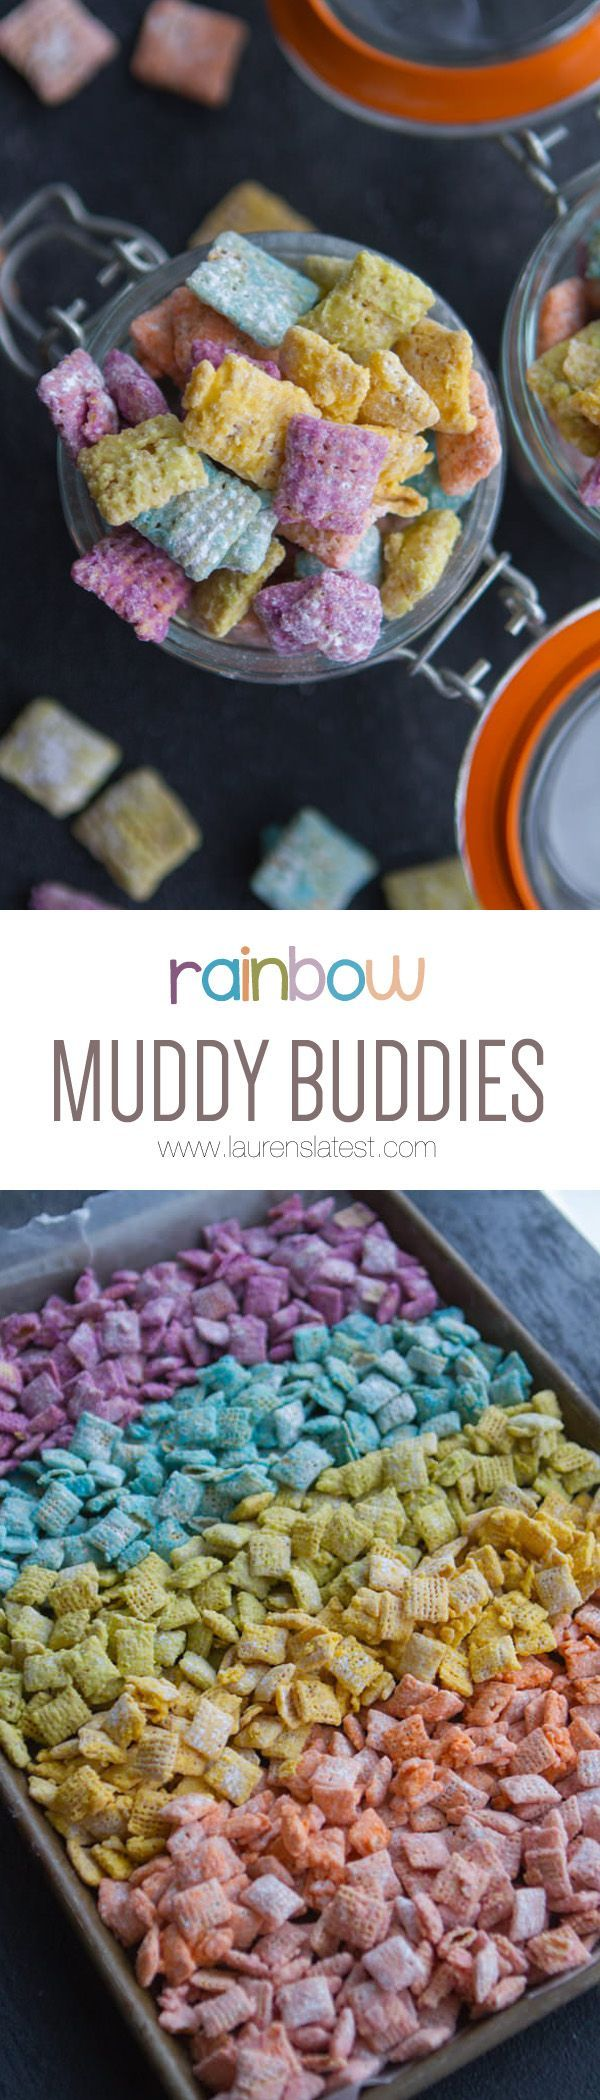 Rainbow Muddy Buddies! The perfect {and easiest} sweet treat to make EVER! Just pick up some colorful candy melts, Chex and powdered sugar! That's all you need! You're only minutes away from sweet snack heaven.